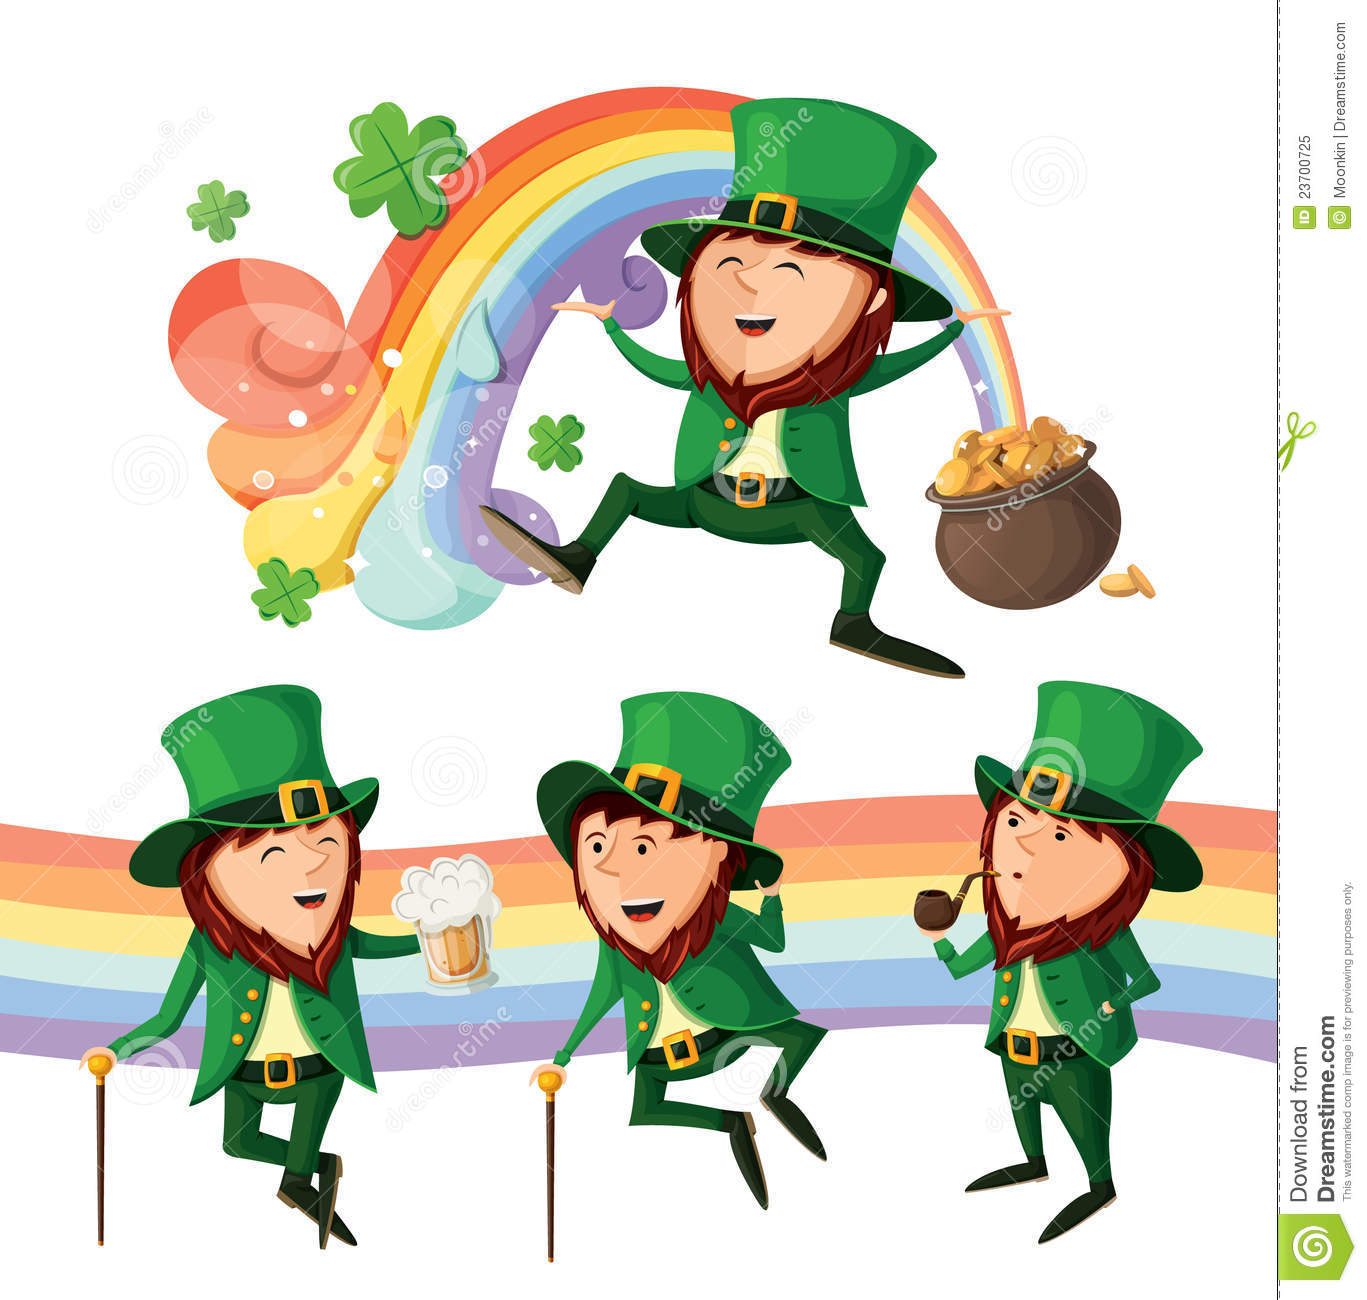 Uncategorized Dancing Leprechauns set of cute leprechauns royalty free stock photo image 23700725 set